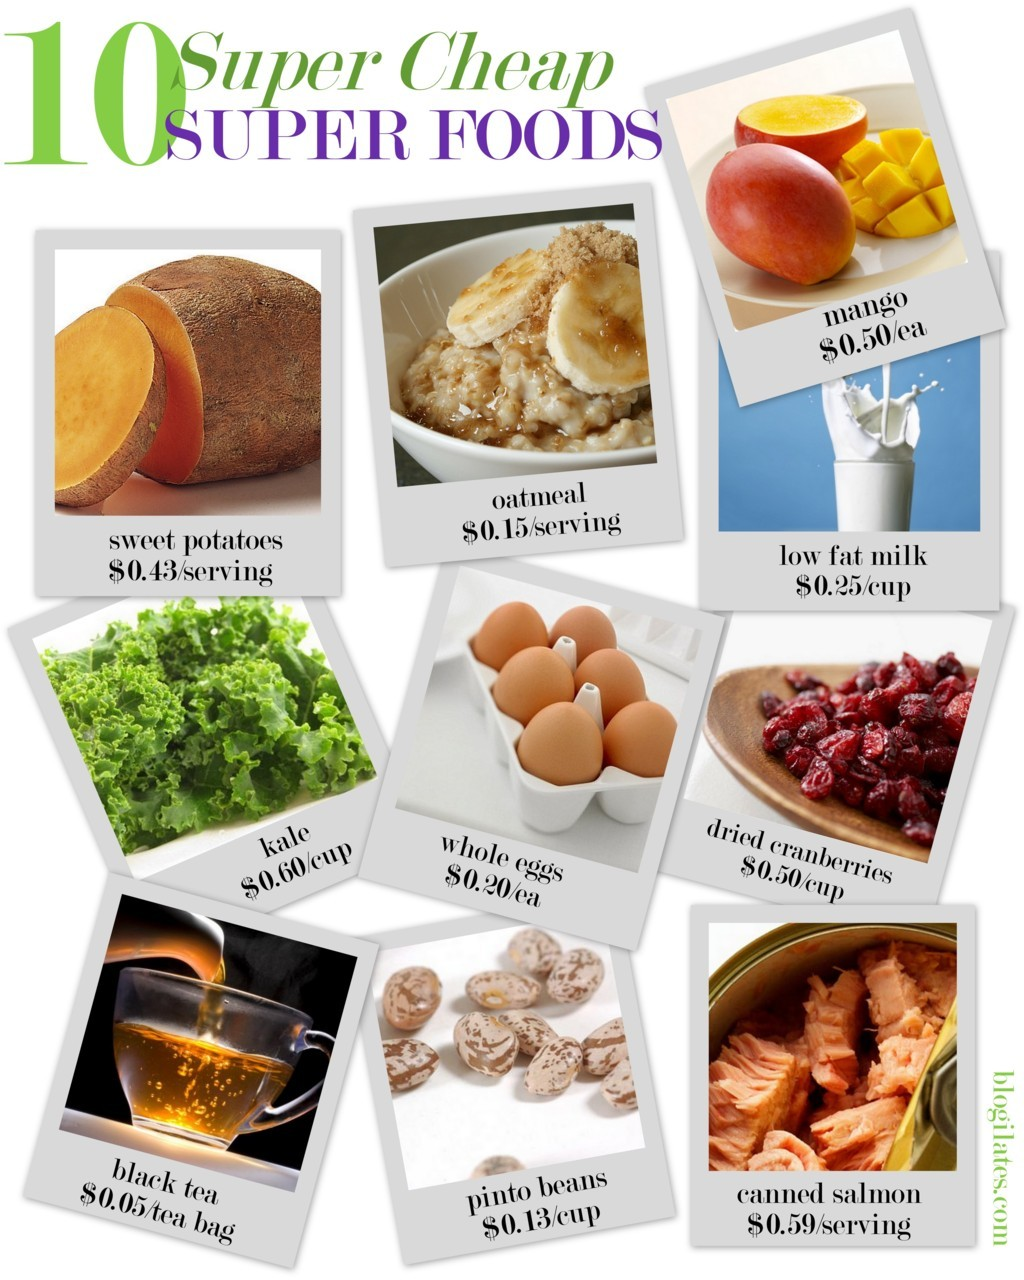 Check out these super cheap super foods! Being healthy does not have to be a luxury. How many of these guys do you have stocked in your fridge or pantry right now? Costs per serving are based on current US market price.